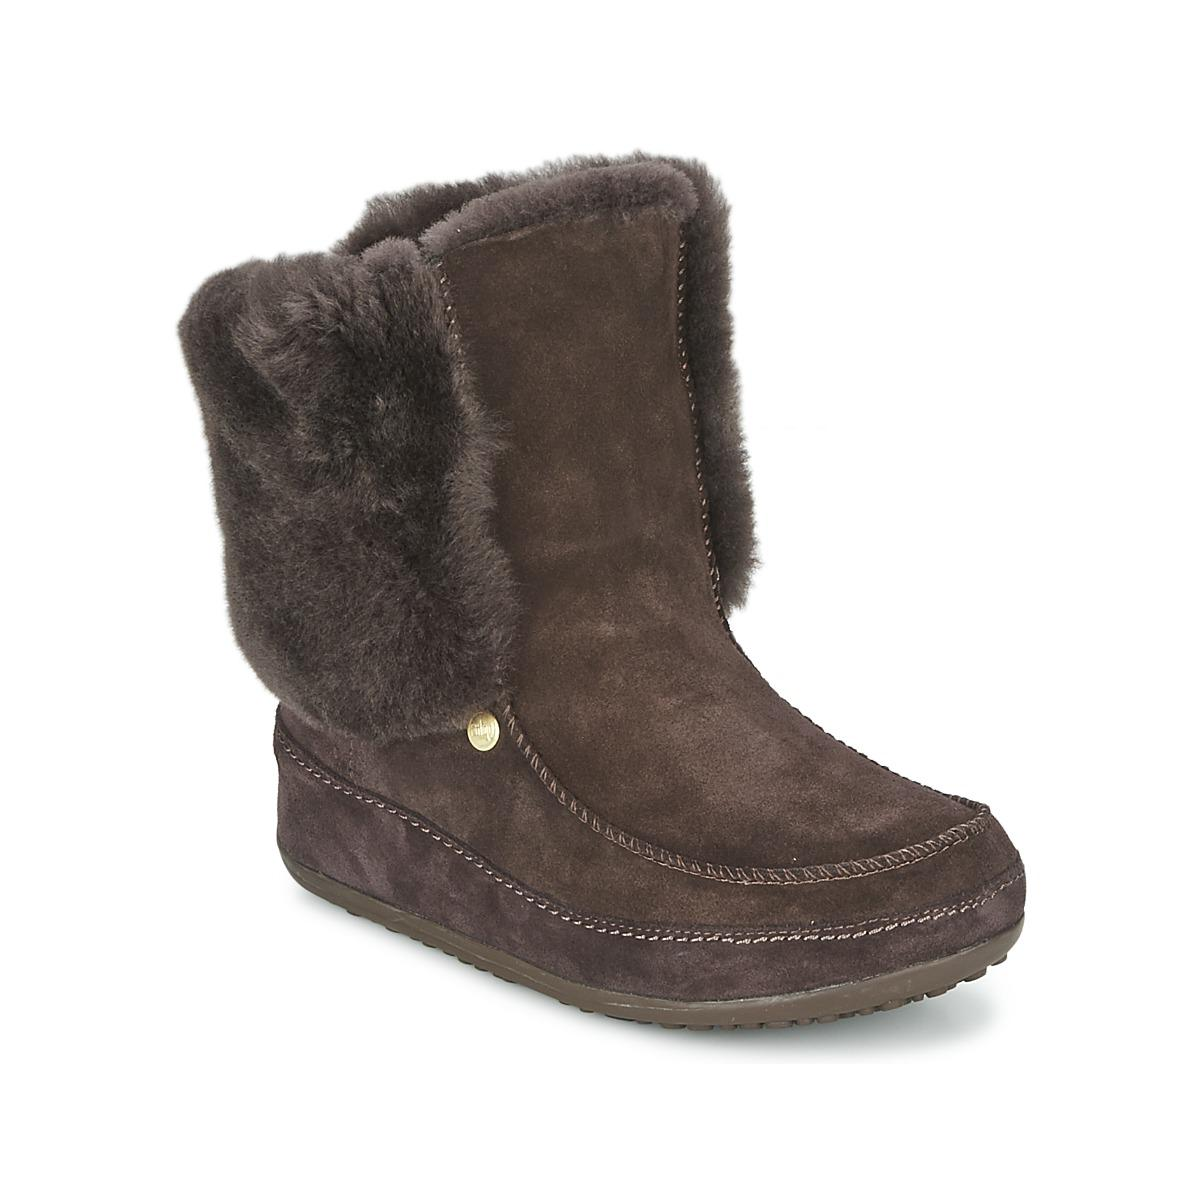 008530b3c1e845 Fitflop Mukluk Moctm Cuff Women s Low Ankle Boots In Brown in Brown ...